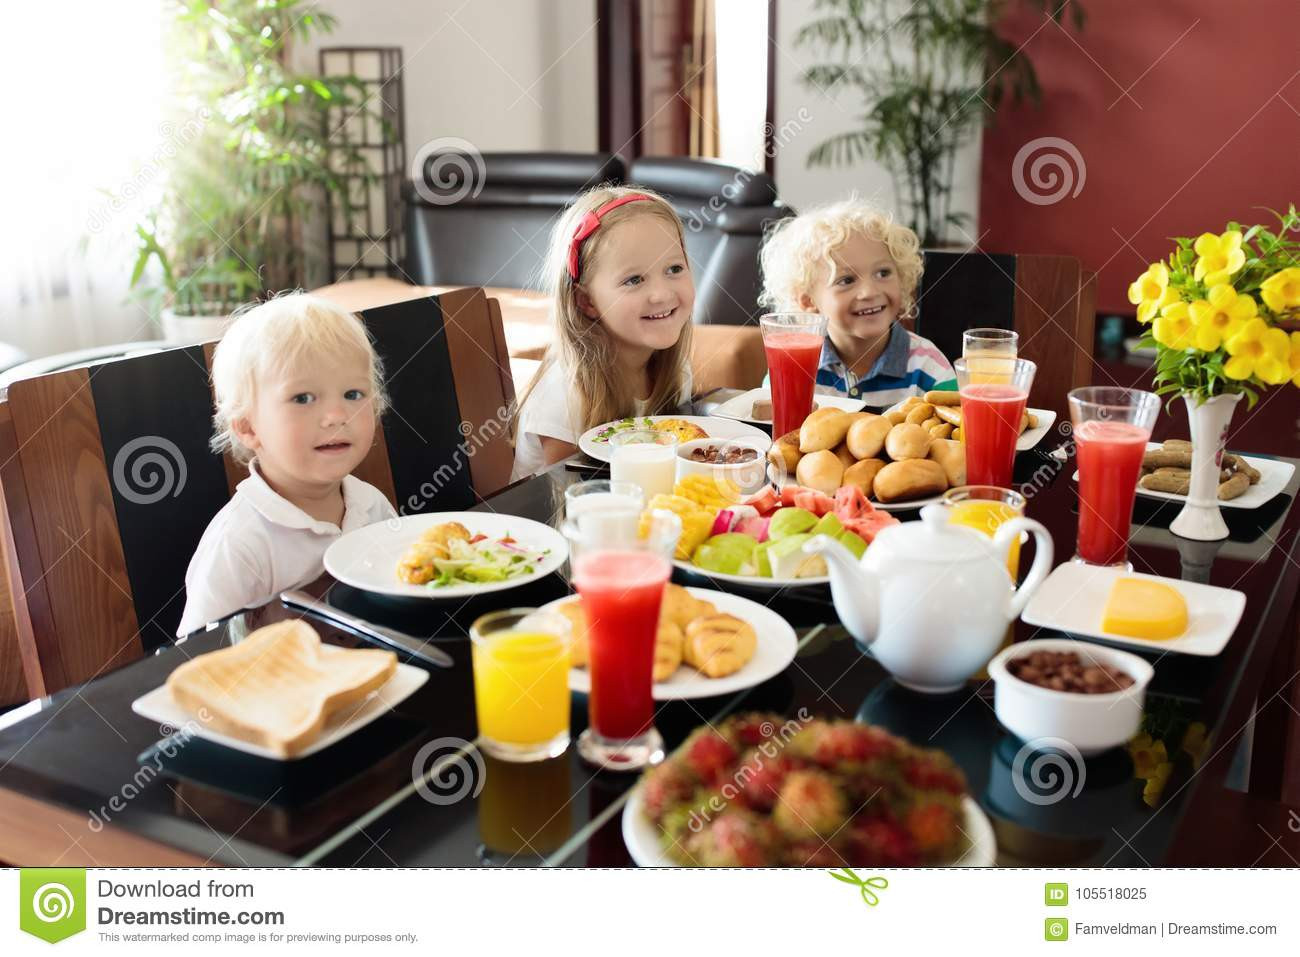 Healthy Family Breakfast  Healthy Family Breakfast For Mother And Kids Stock Image